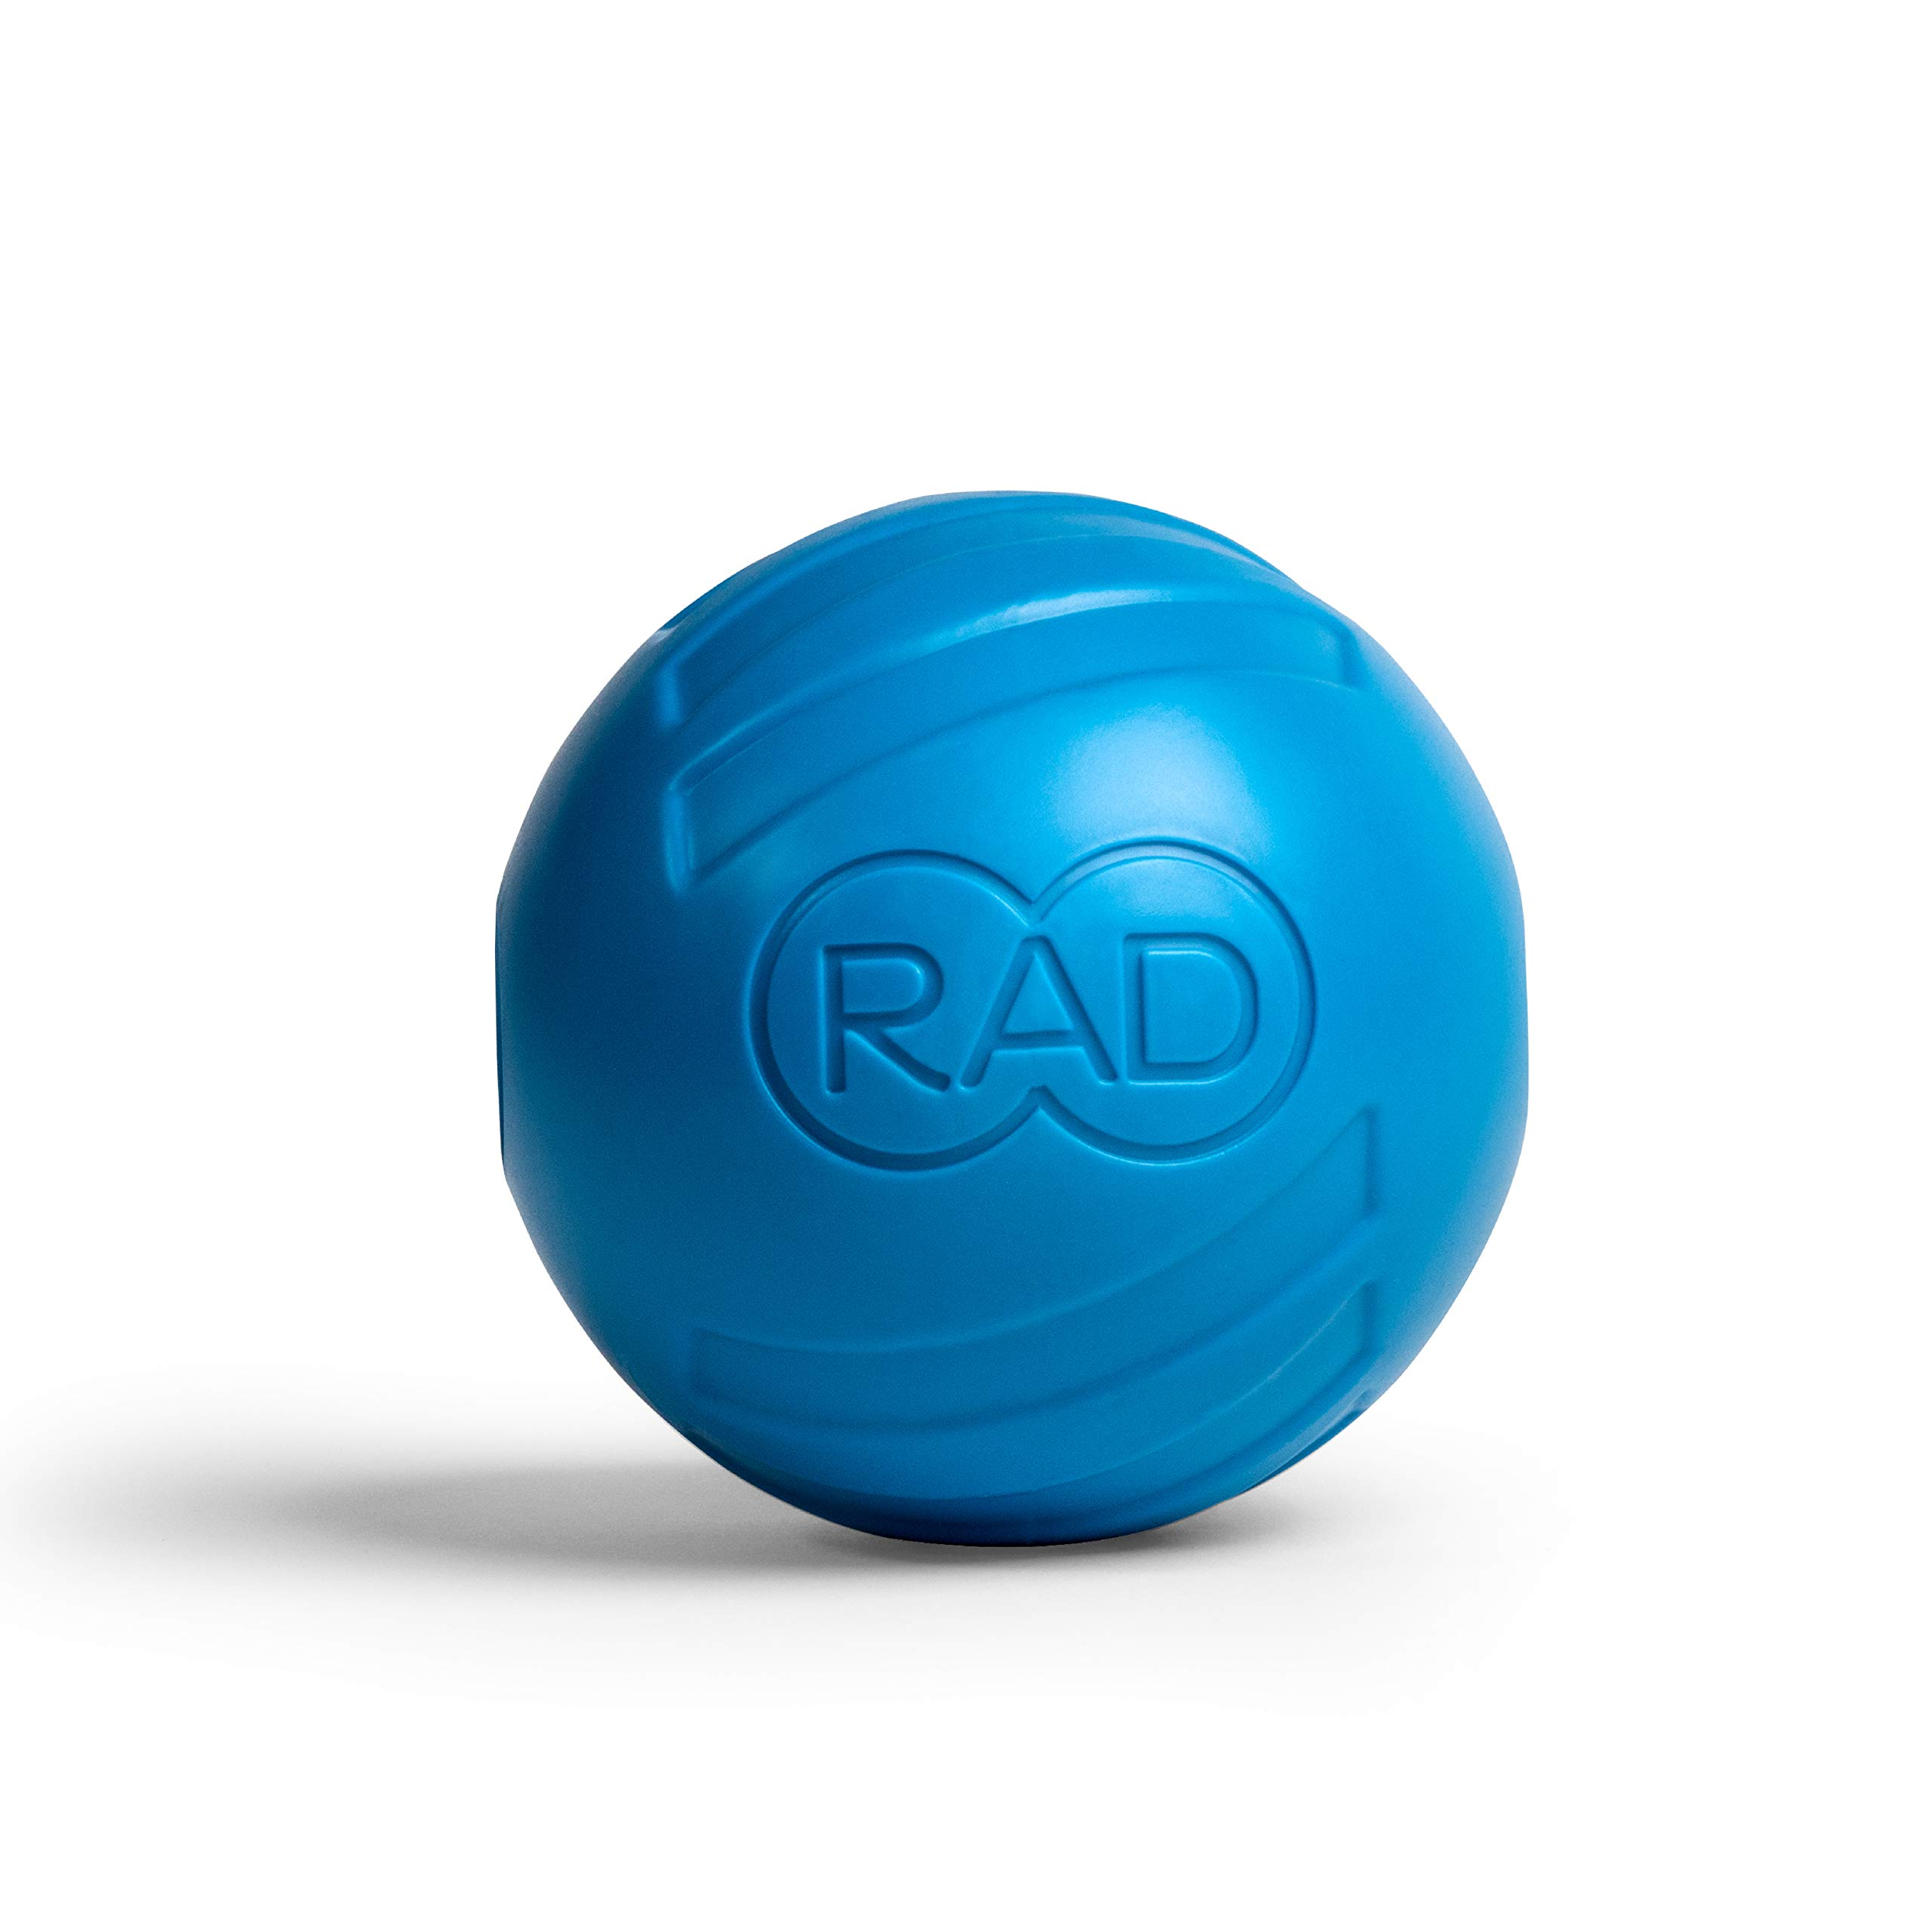 RAD Atom I High Density Massage Ball for Pecs, Shoulders, Glutes, Hamstrings, Quads and Traps Self Myofascial Release, Massage, Mobility and Recovery by RAD